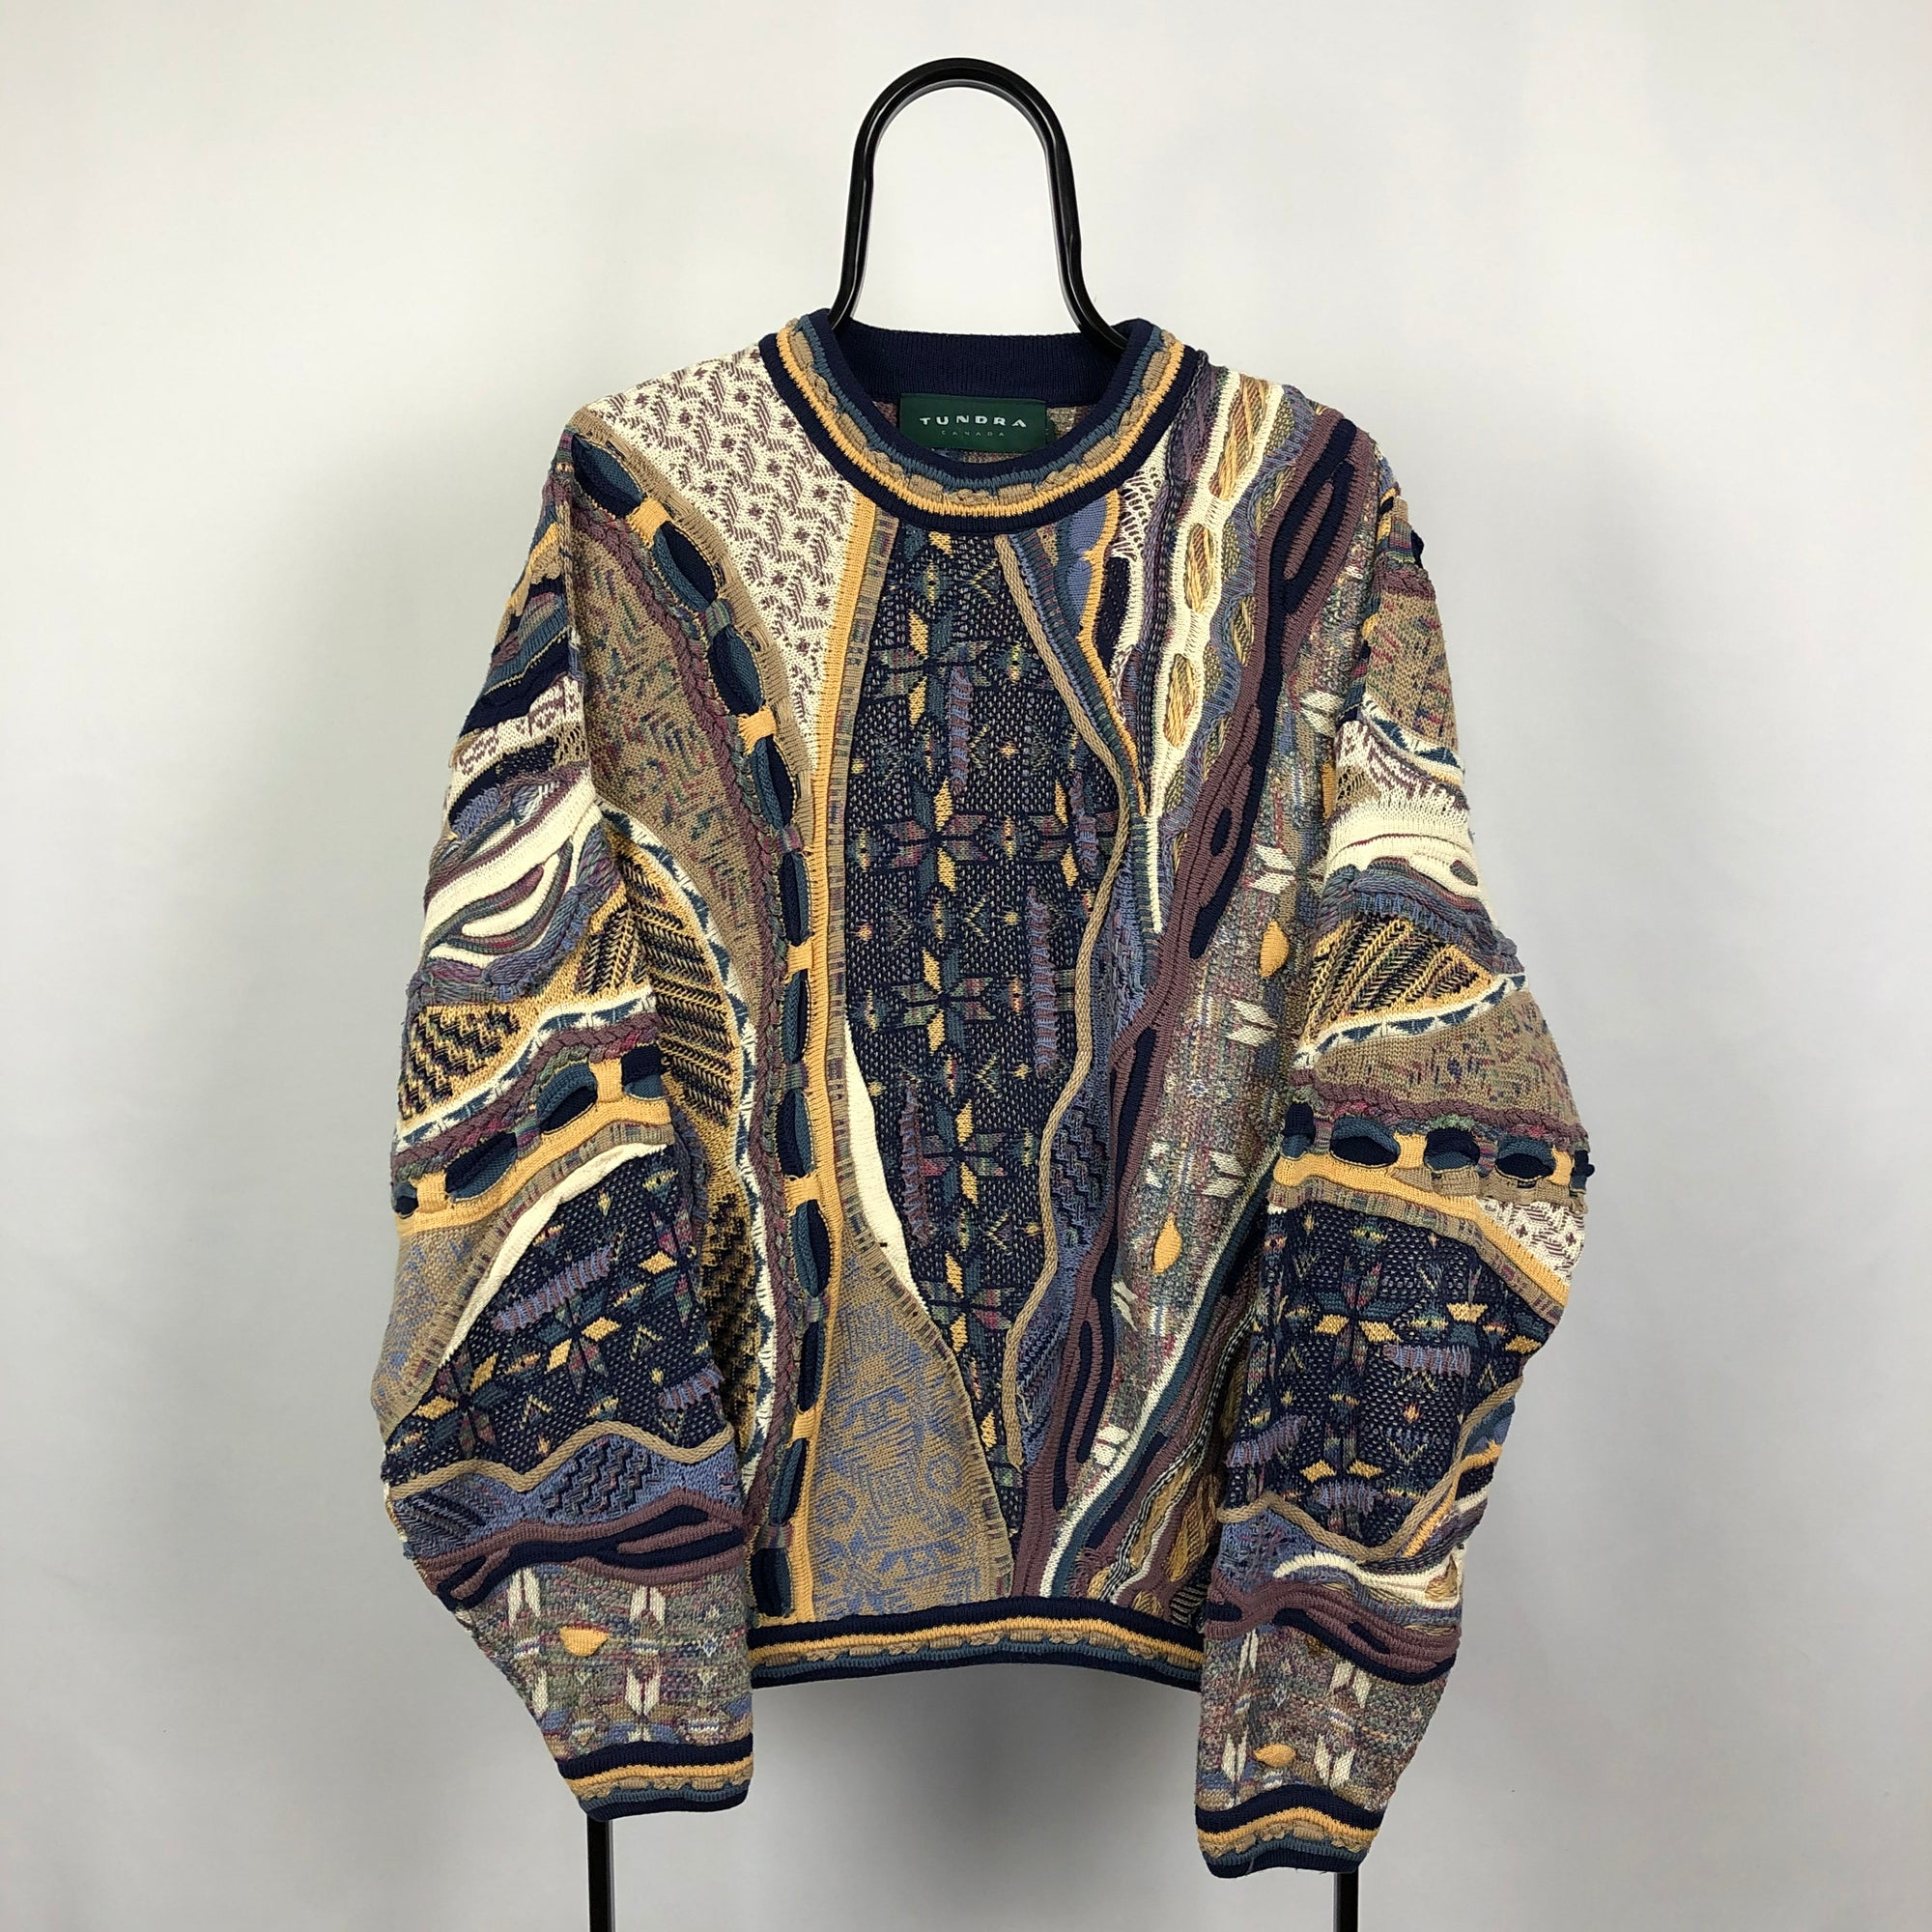 Vintage Tundra Coogi Style Sweater - Men's Large/Women's XL